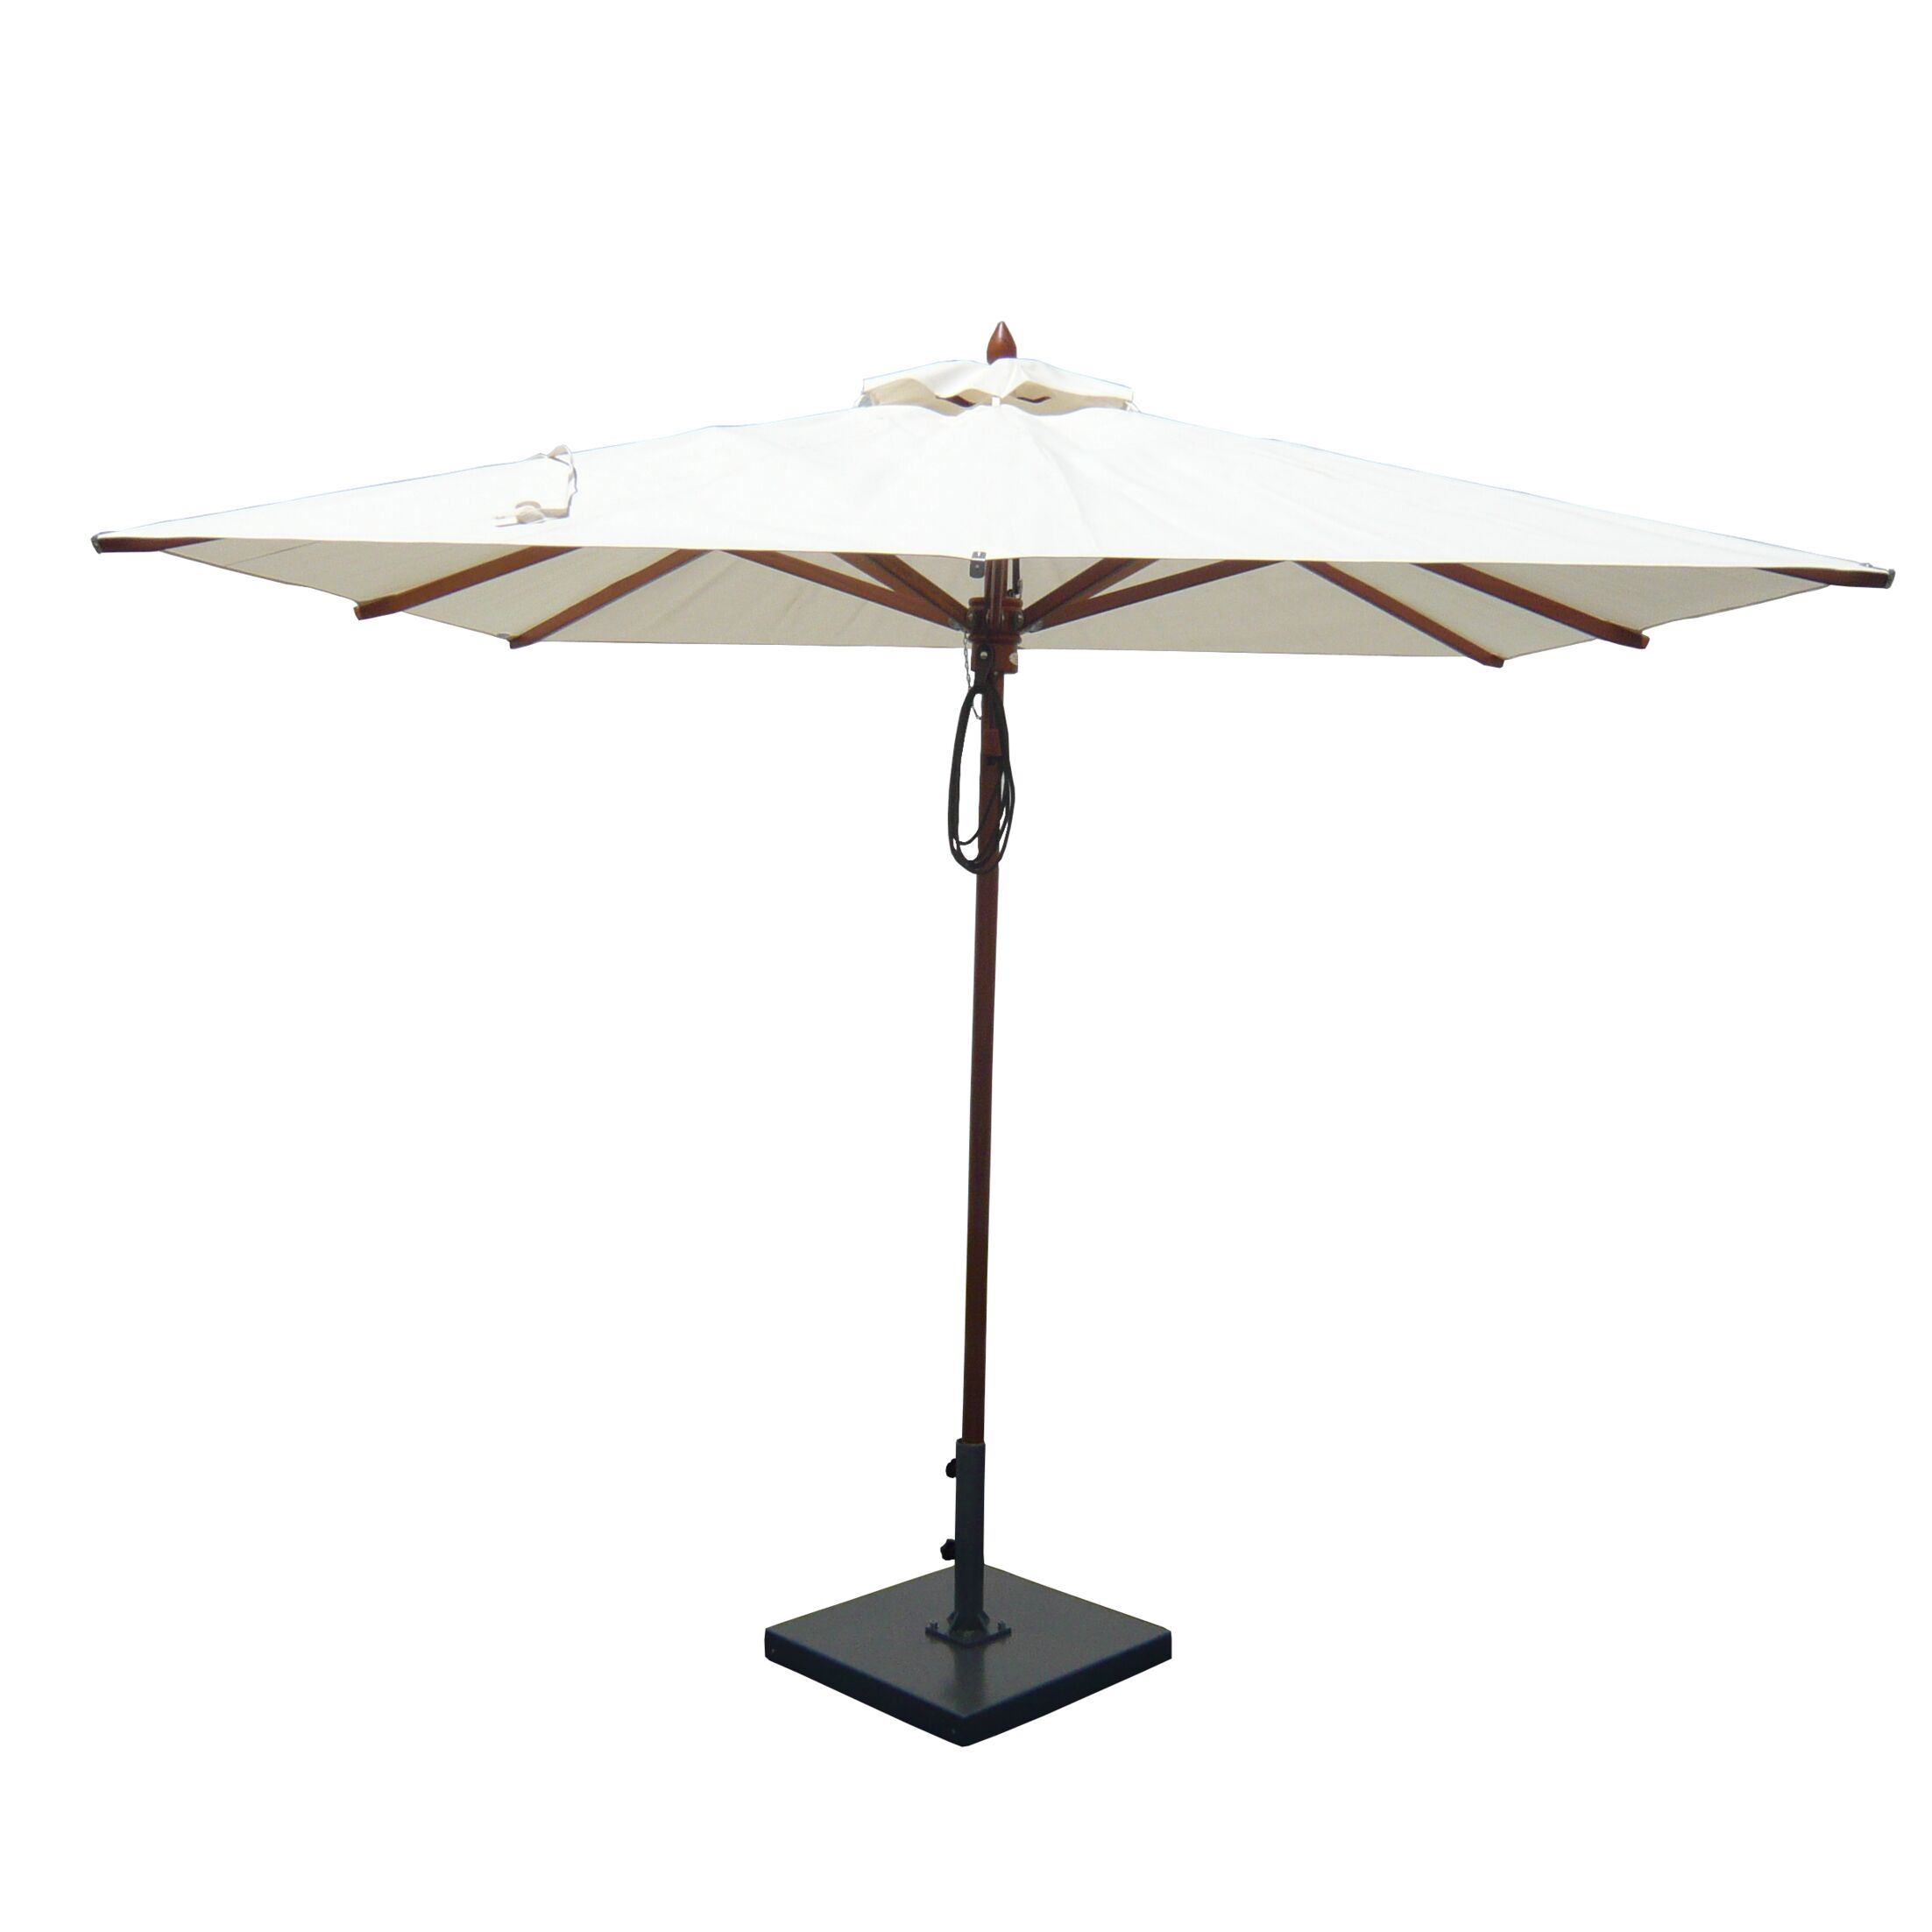 8' Square Market Umbrella Fabric: Natural